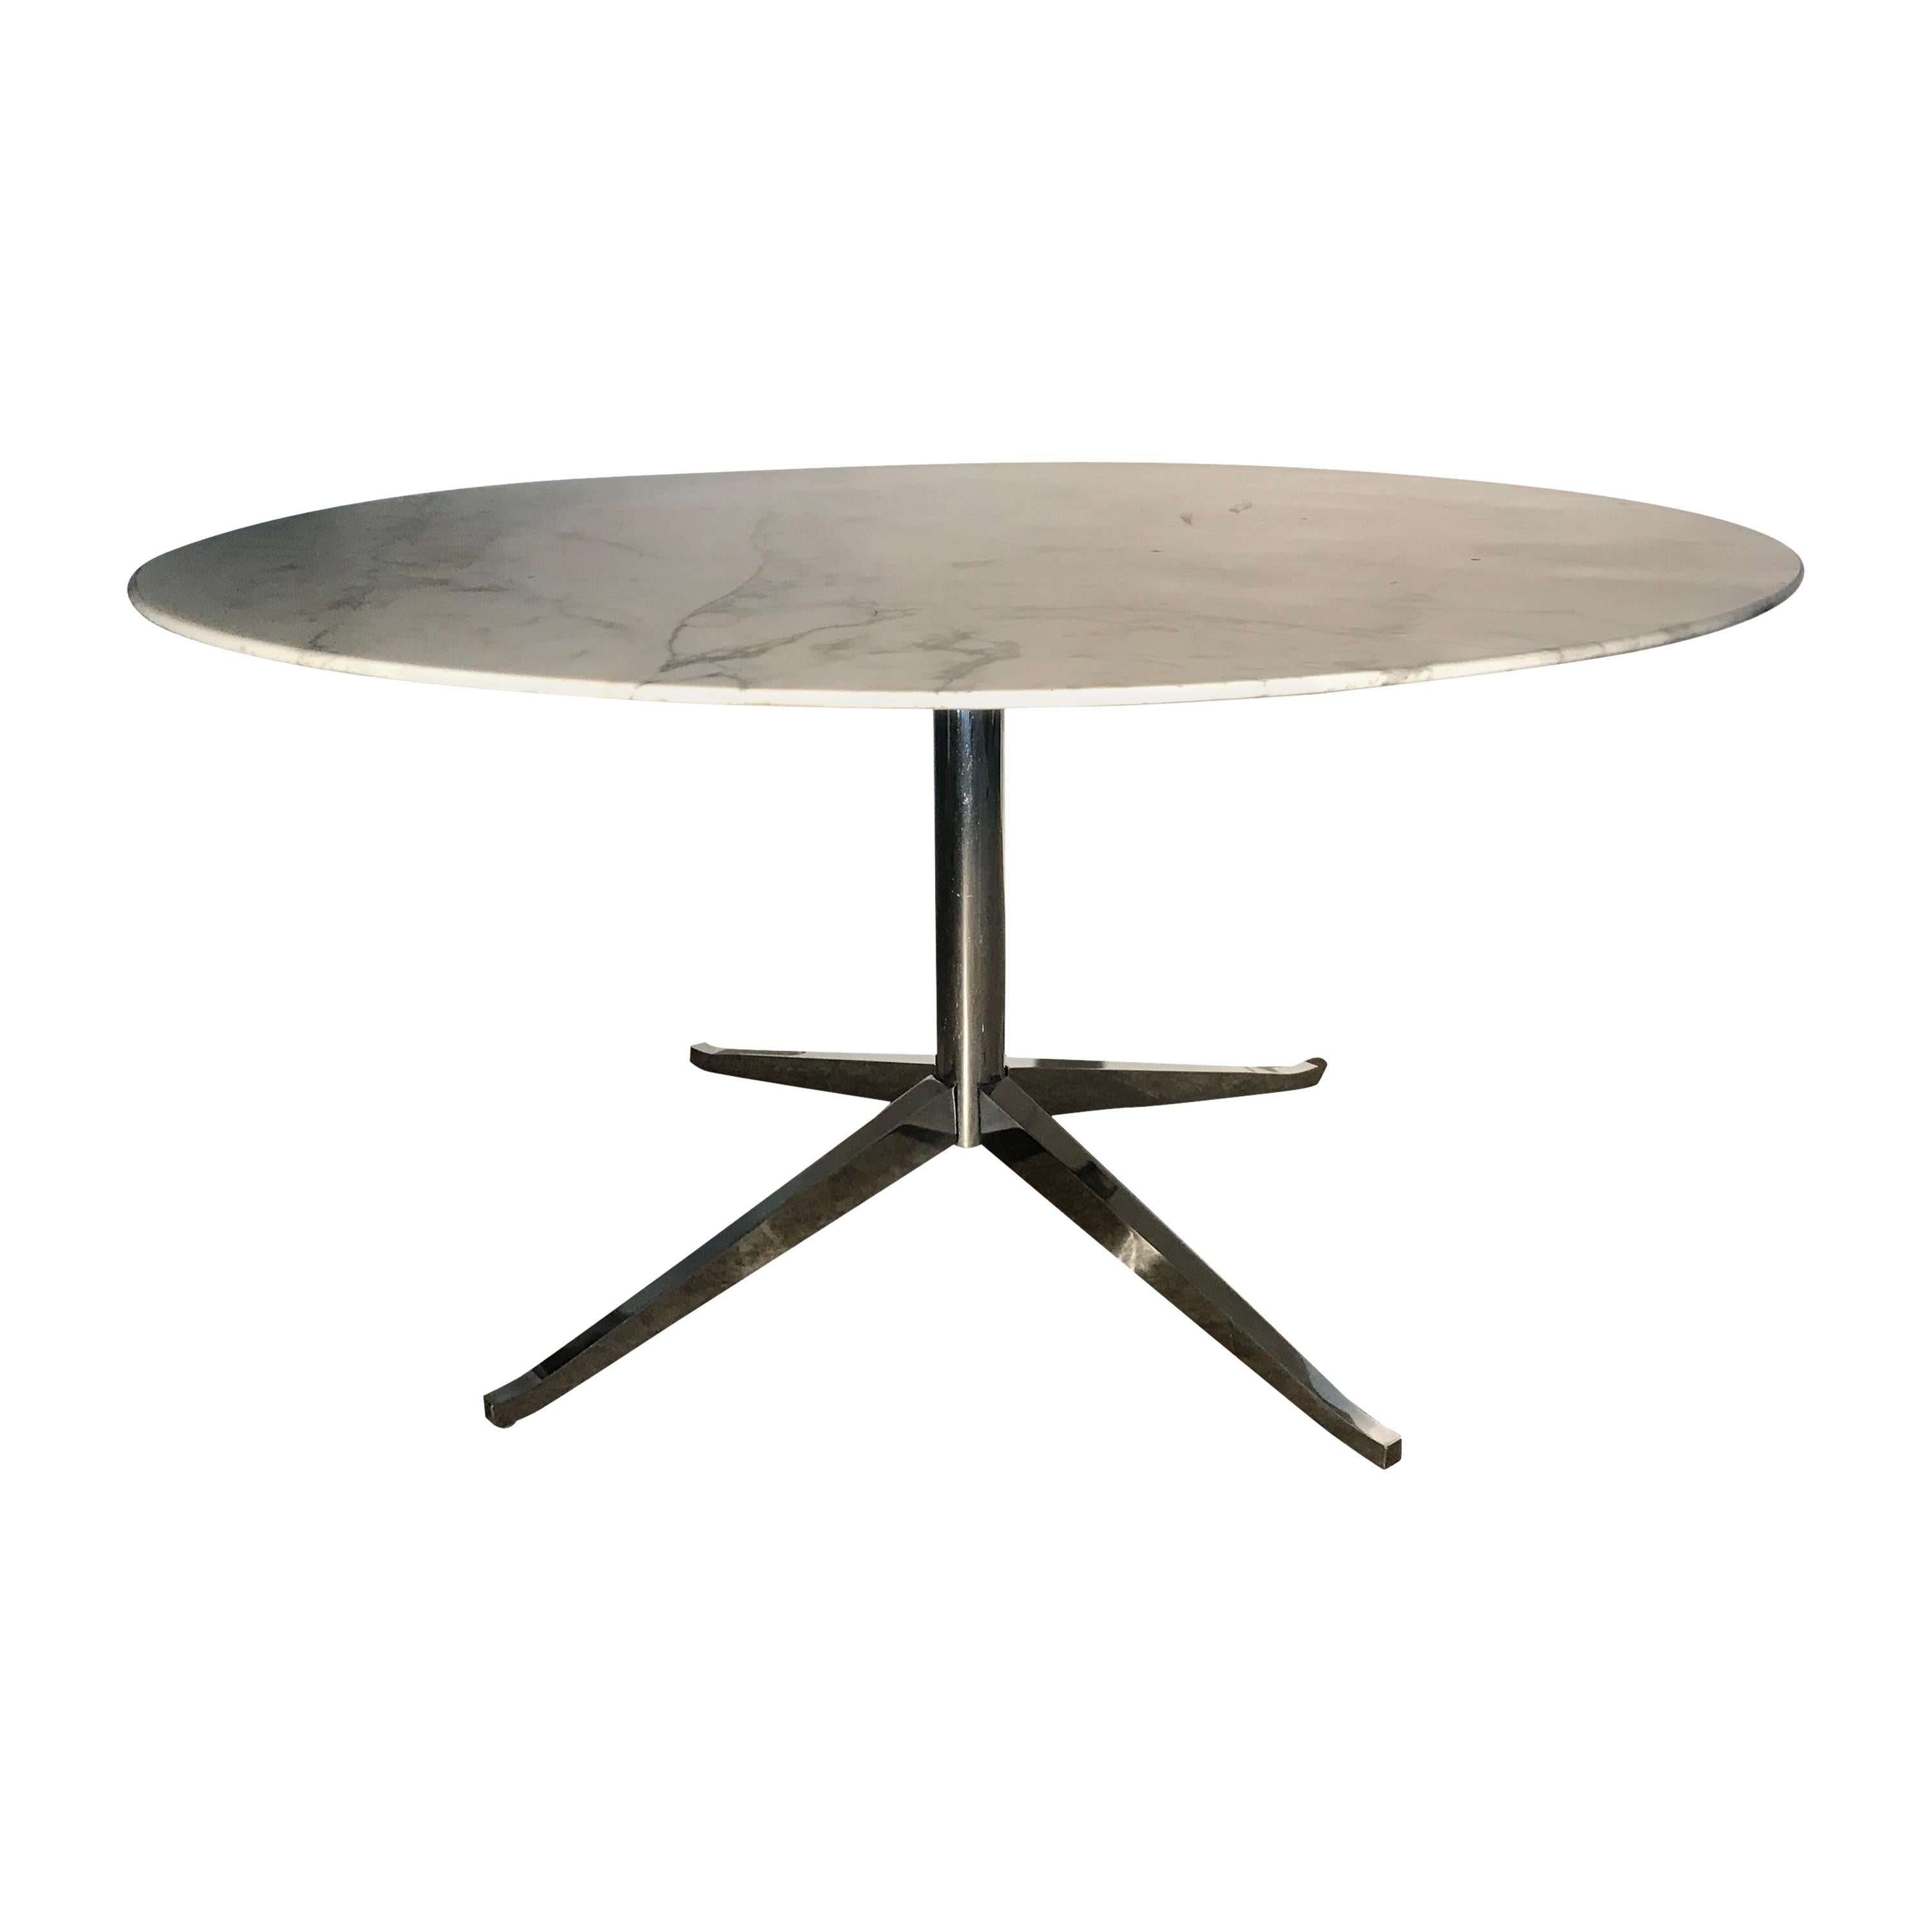 Knoll Table Classic Modernist Marble Top Dining Table By Florence Knoll For Knoll New York